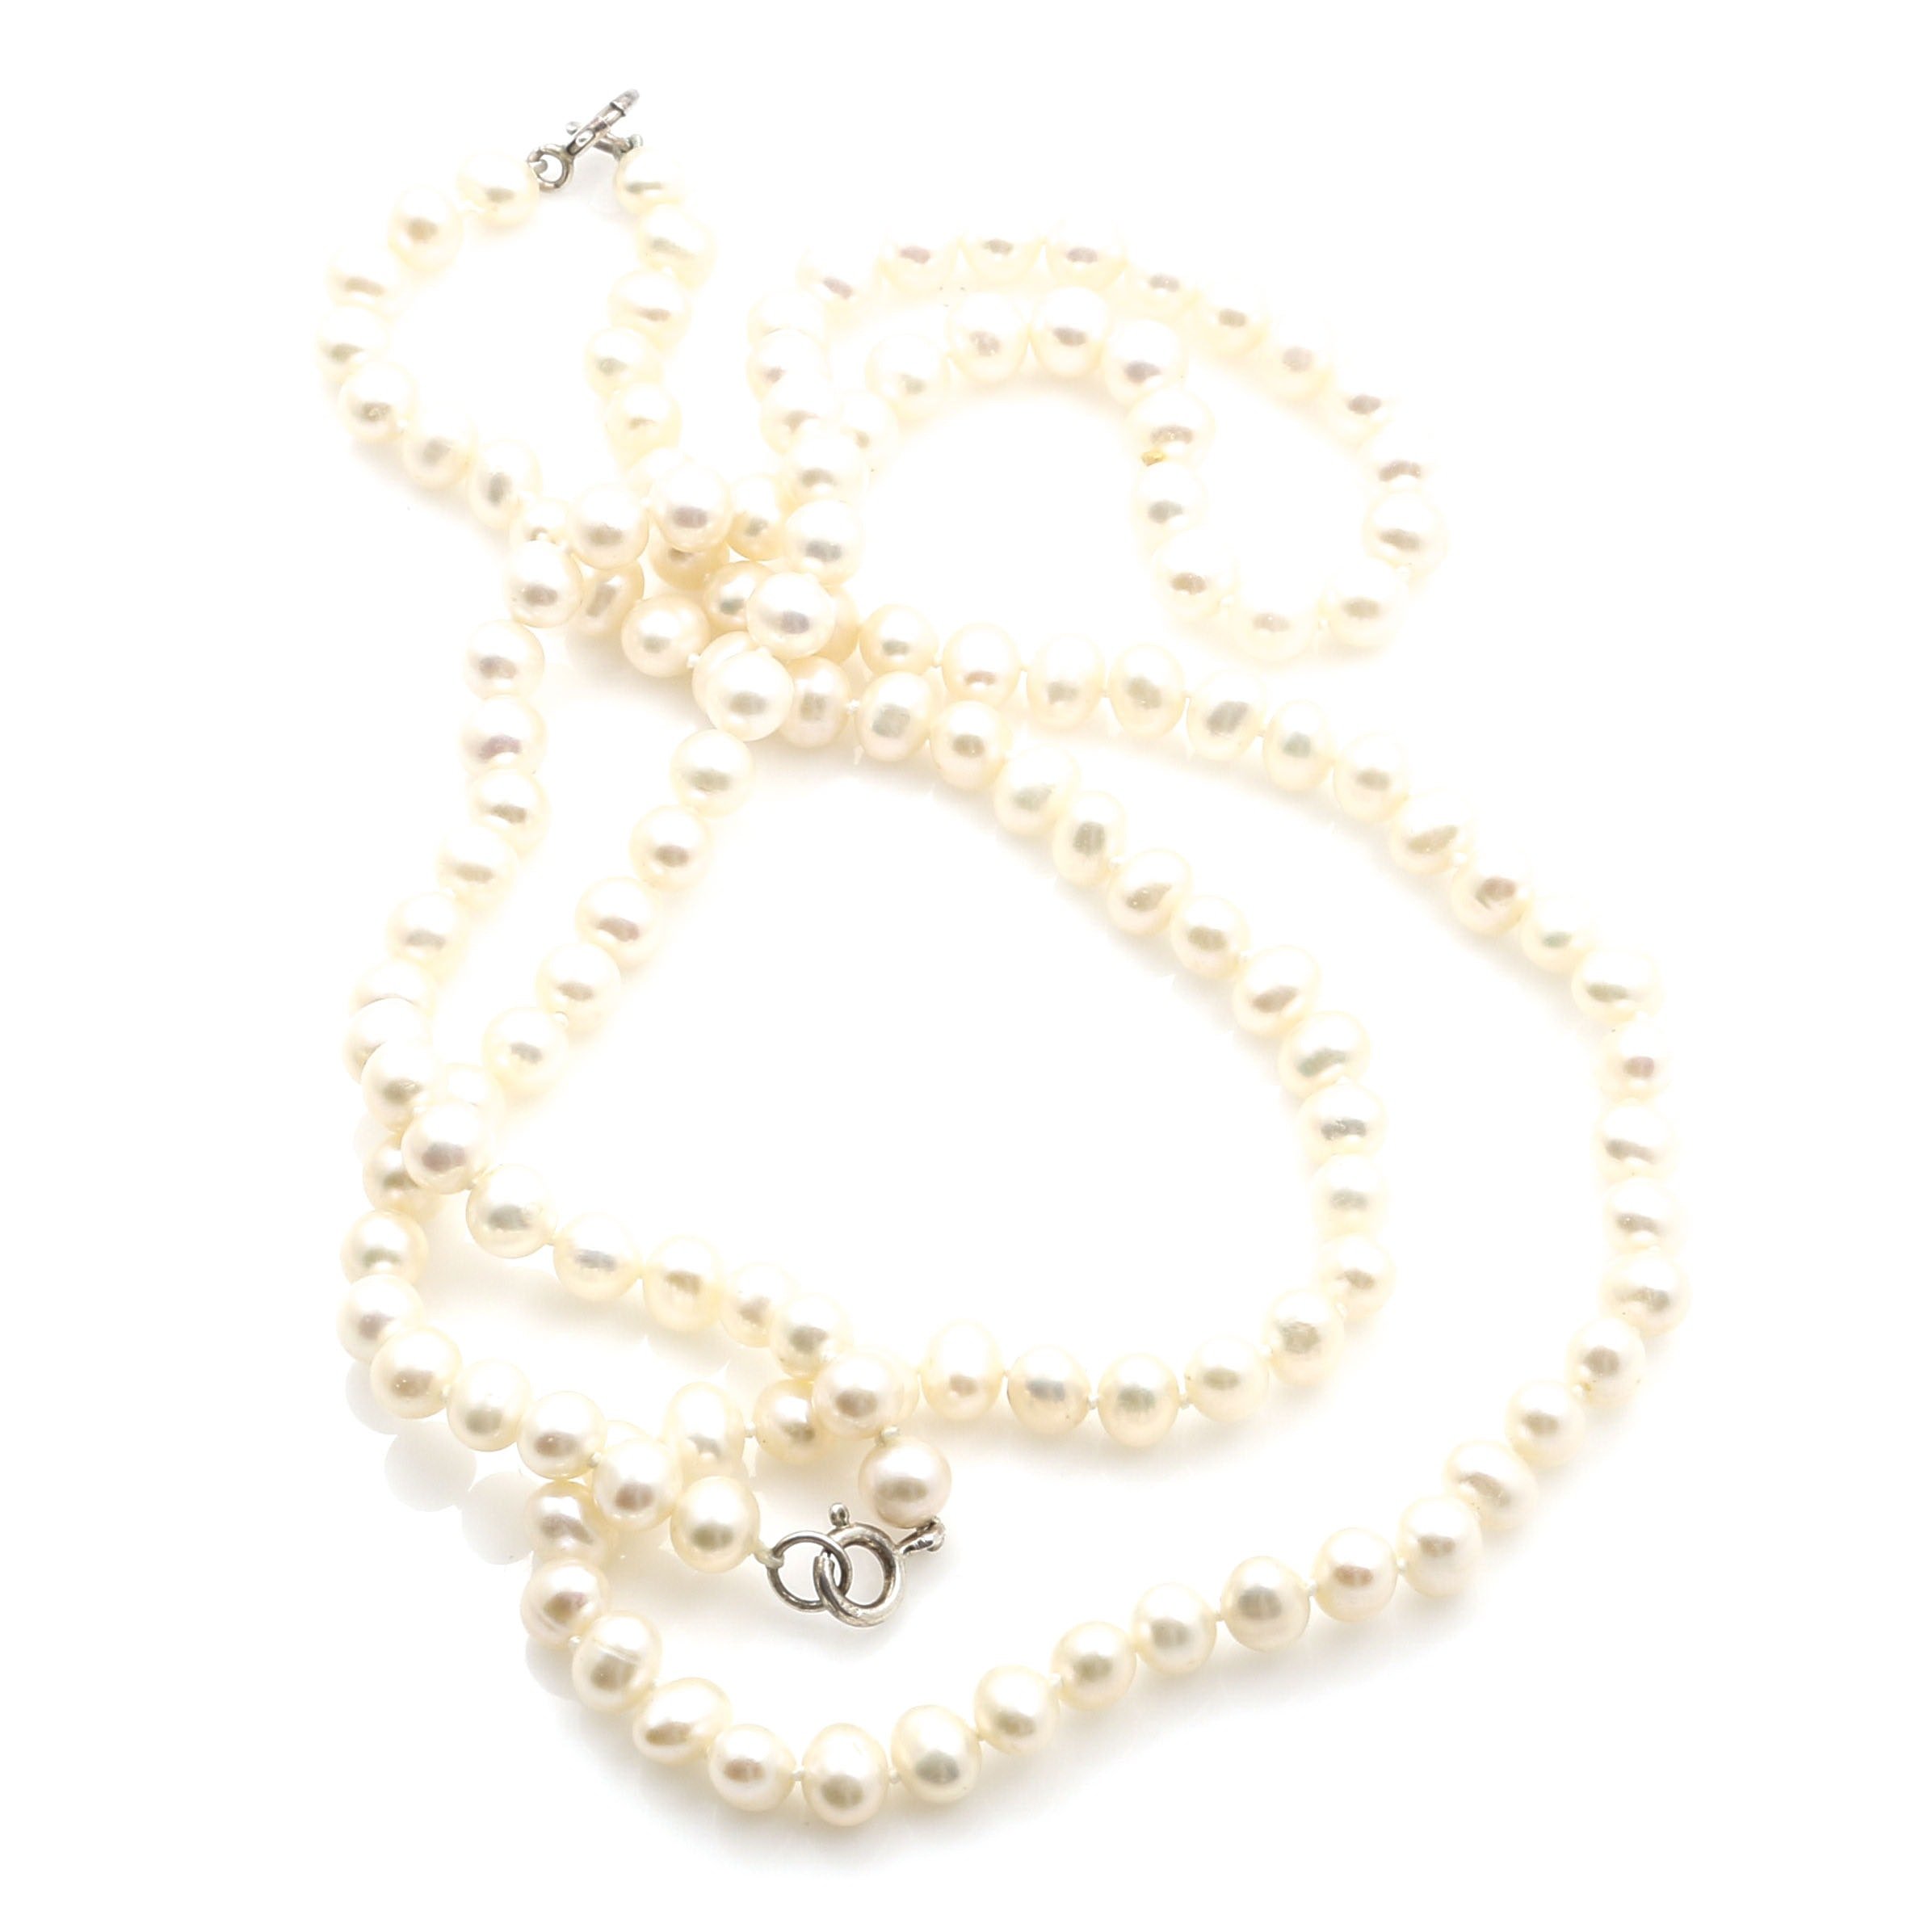 Sterling Silver Cultured Freshwater Pearl Necklaces